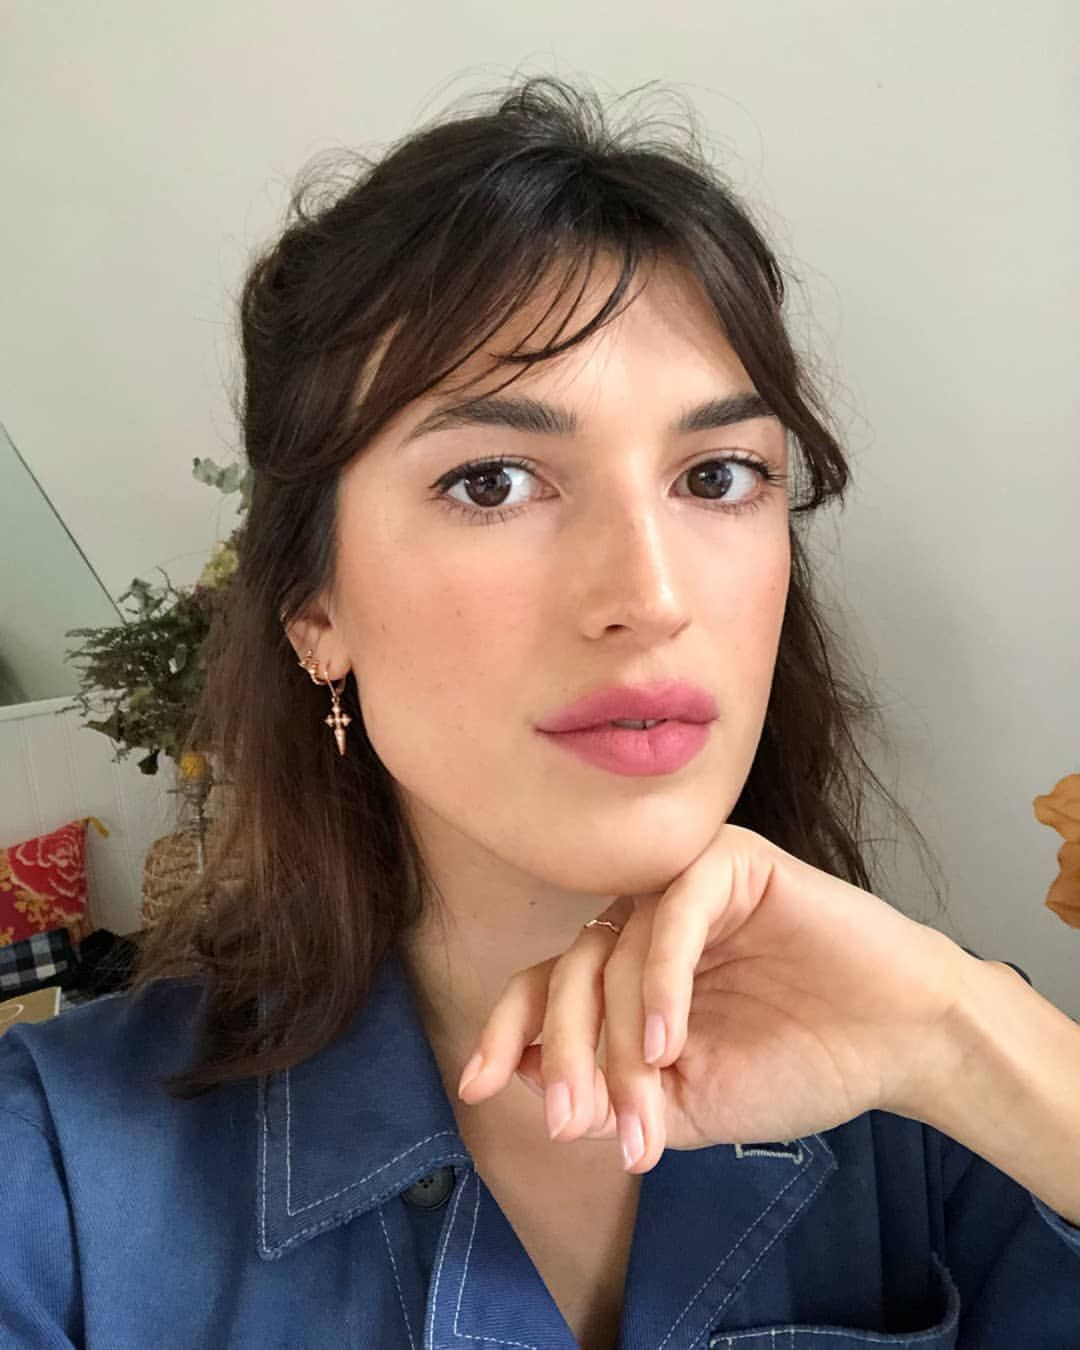 French Beauty Fashion Youtubers: Épinglé Par Josie Sur French Girls